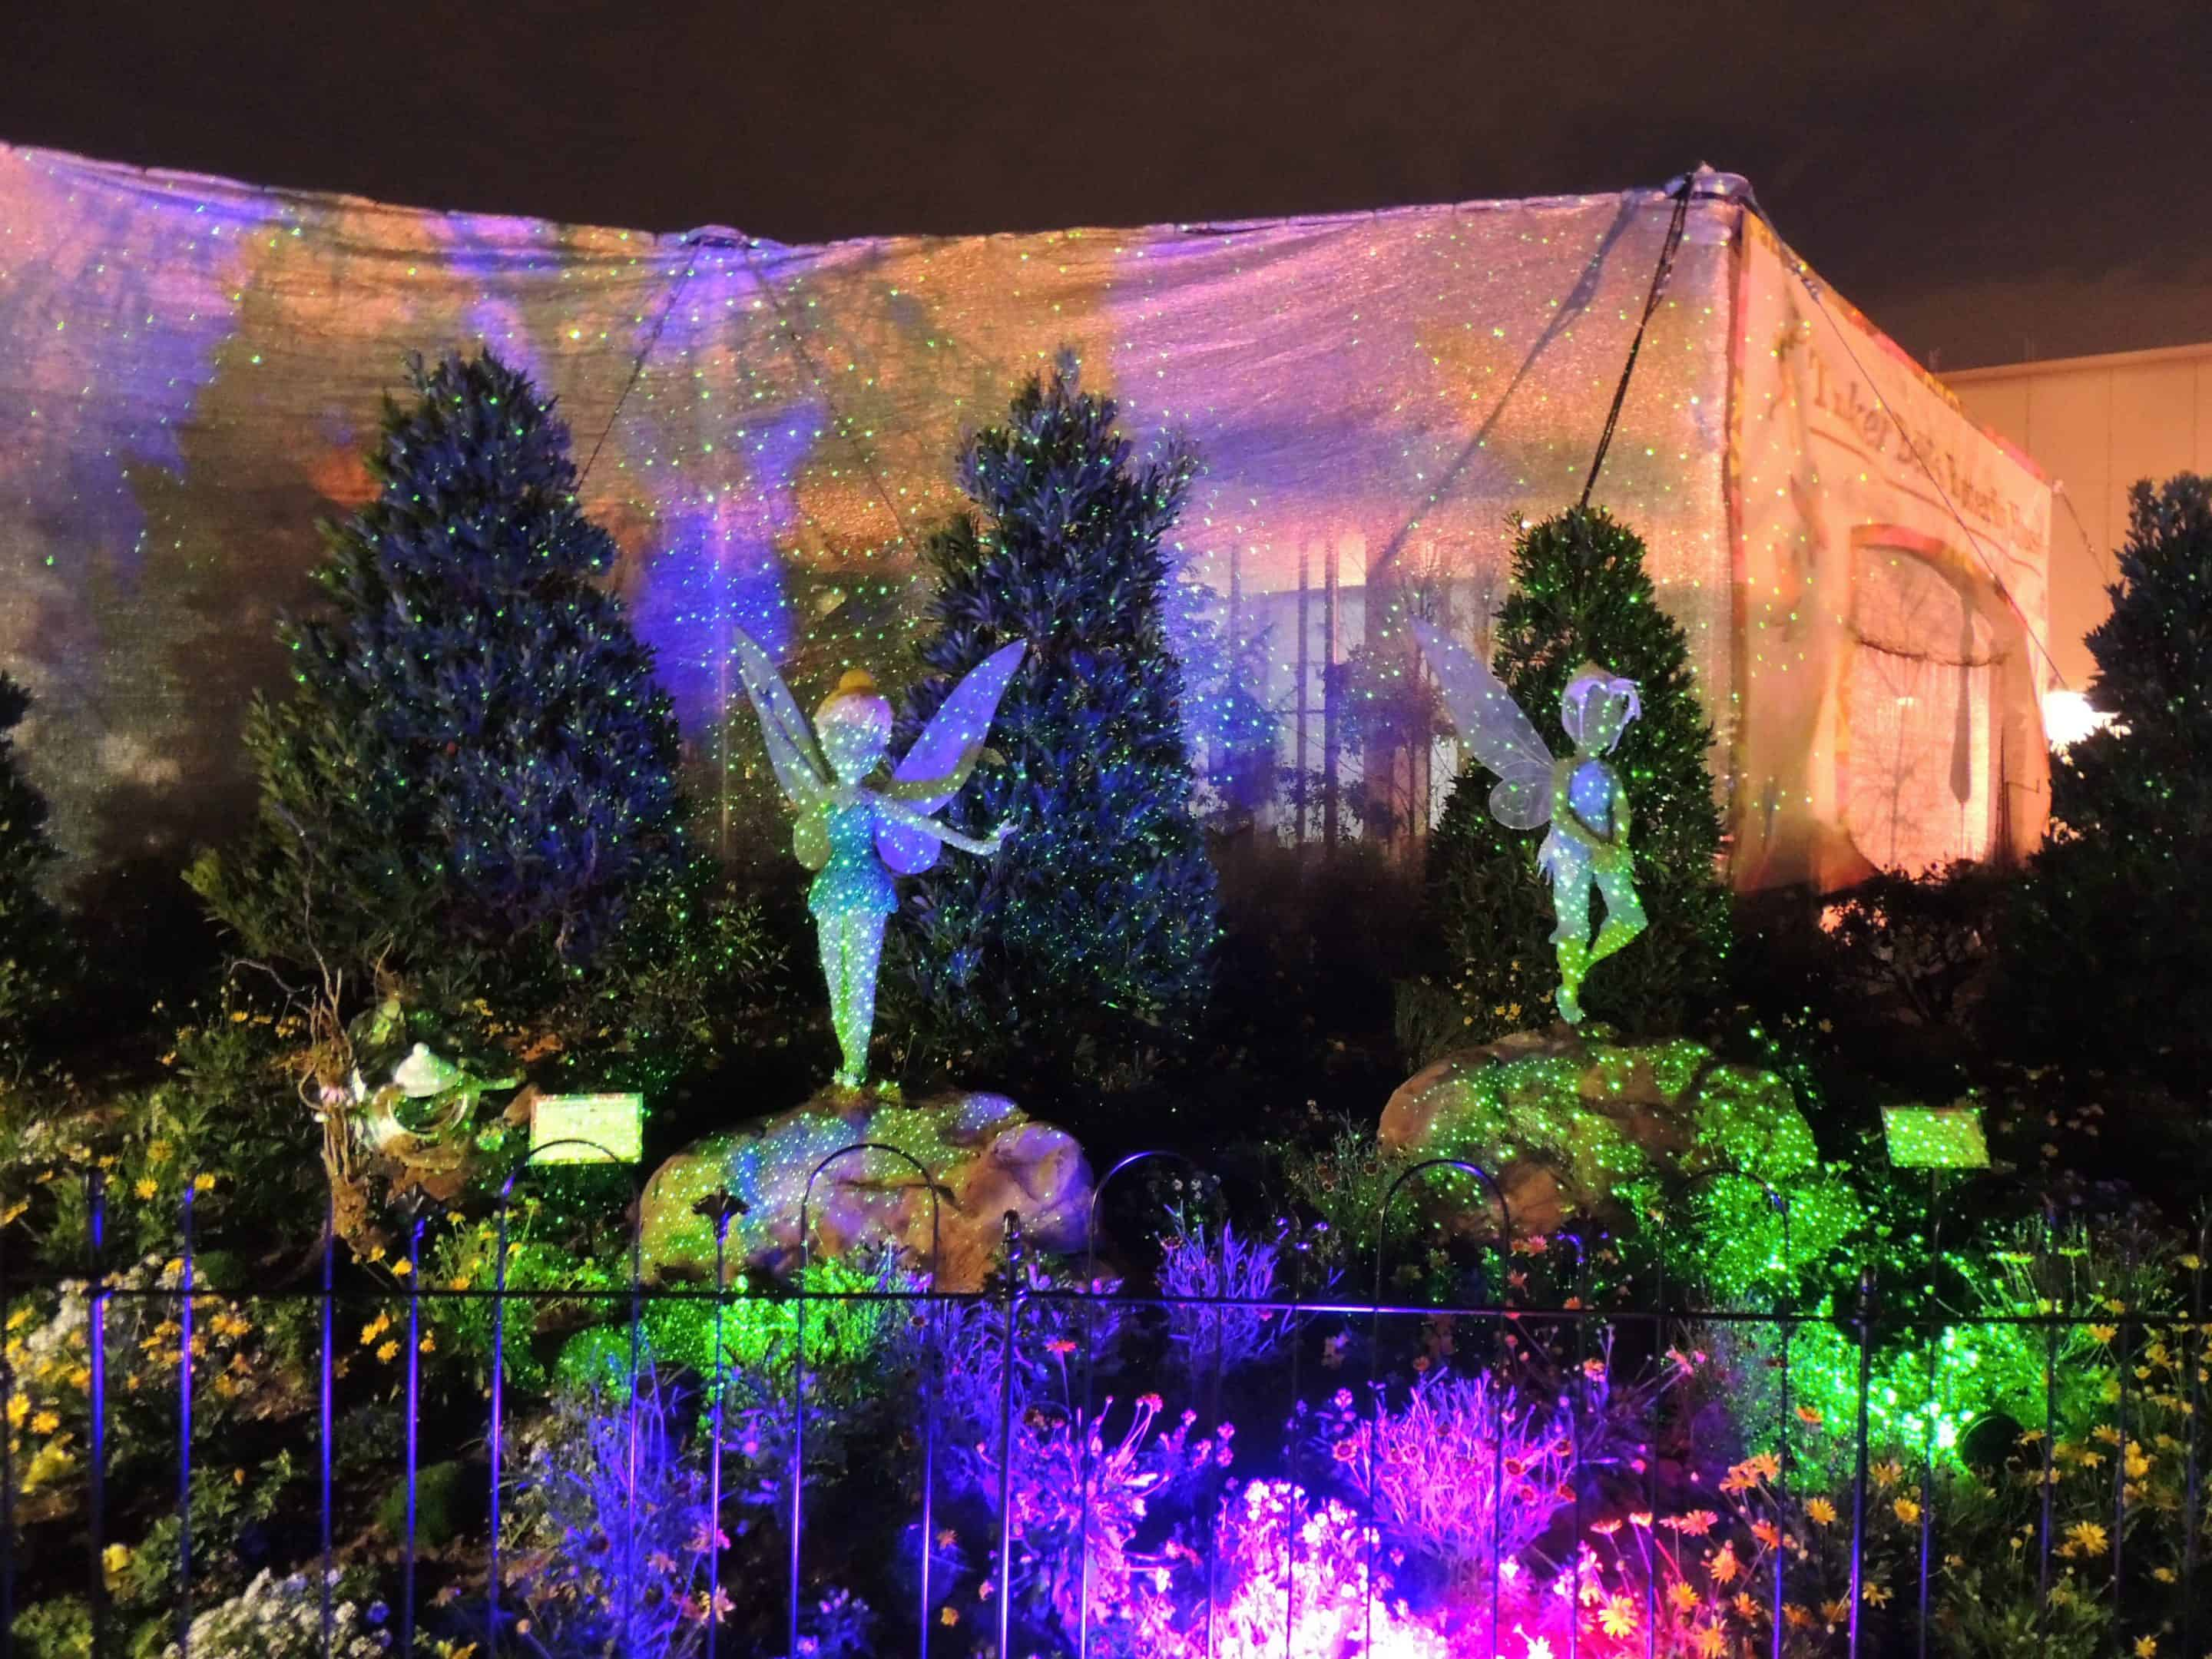 Nightime Magic at Epcot's Flower and Garden Festival